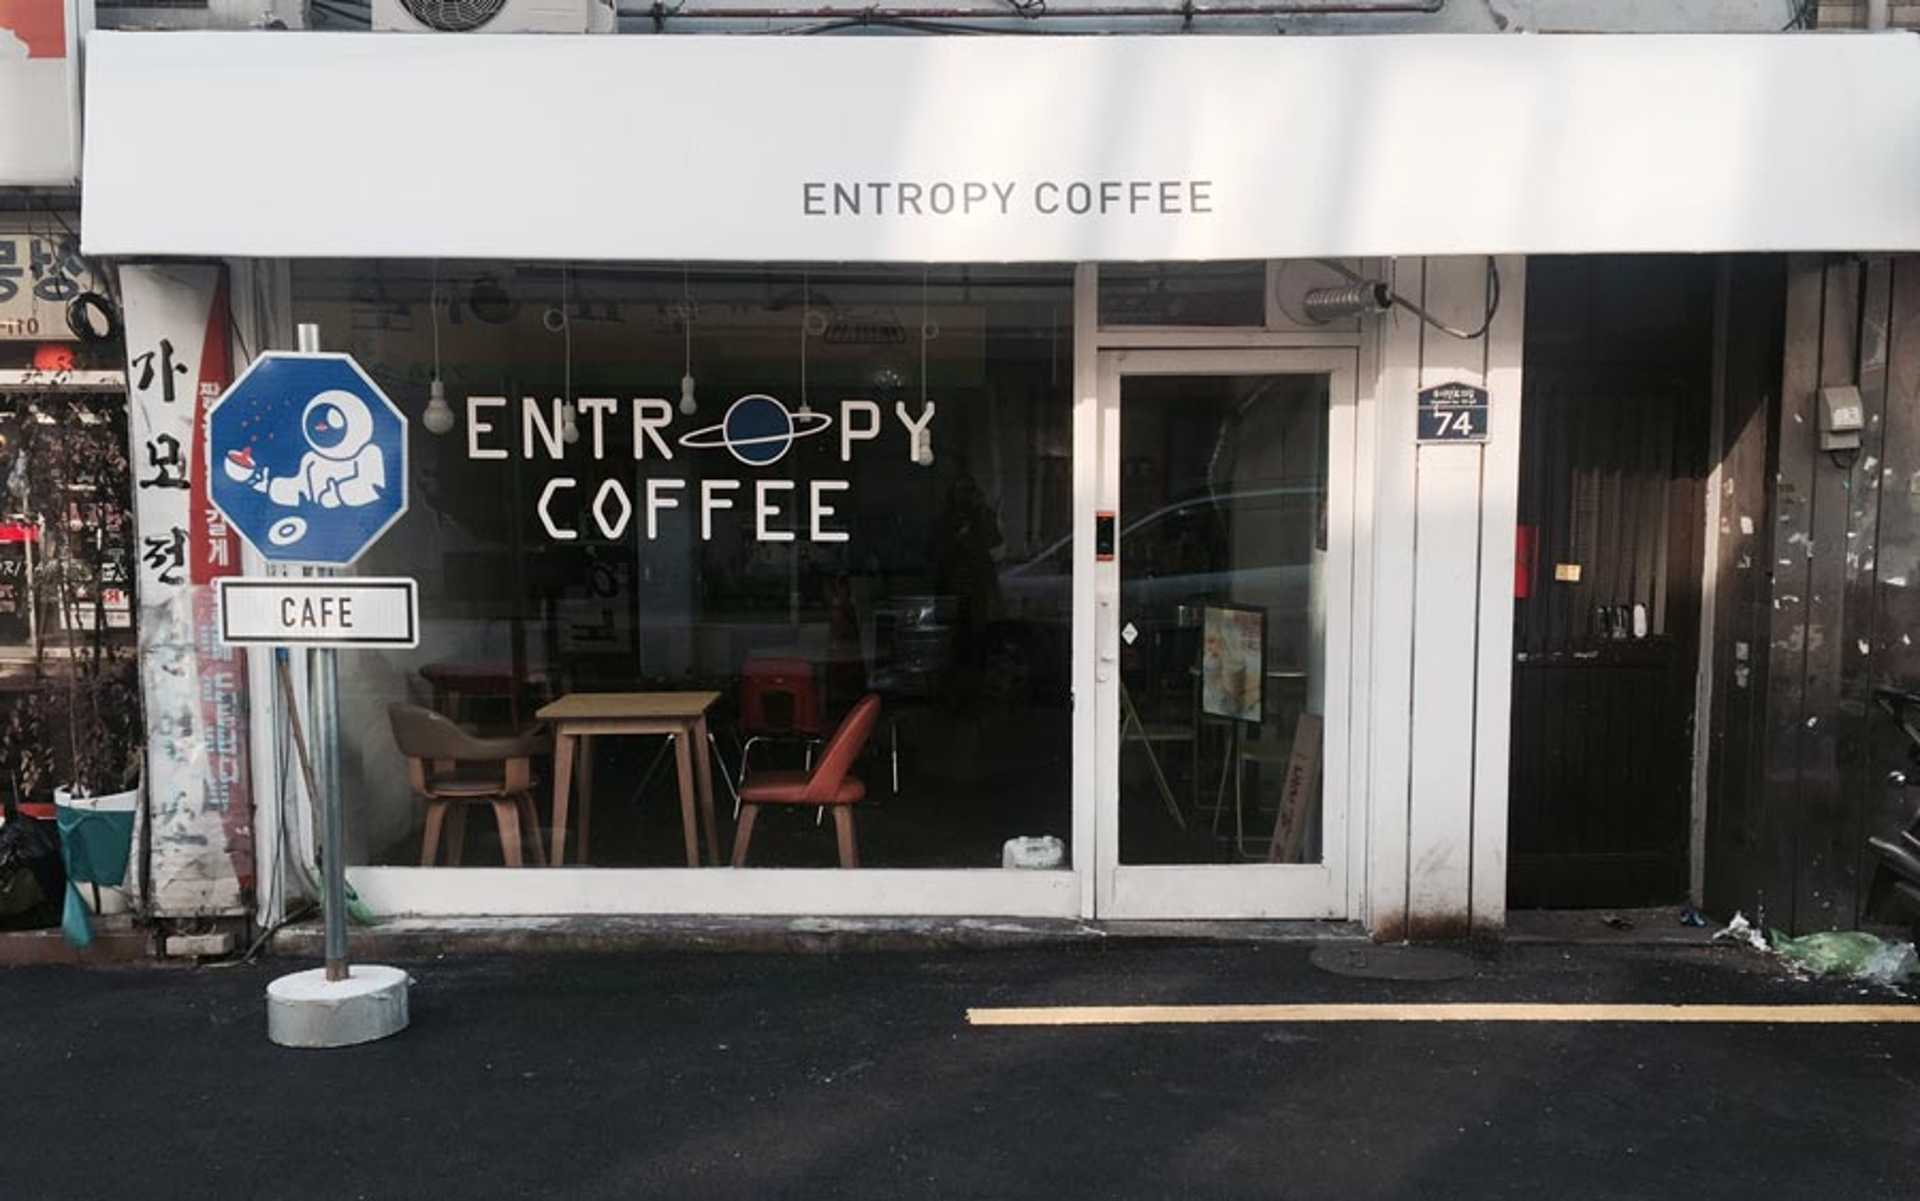 entrophy-coffee-cafe-itaewon-seoul-eid-guesthouse-2